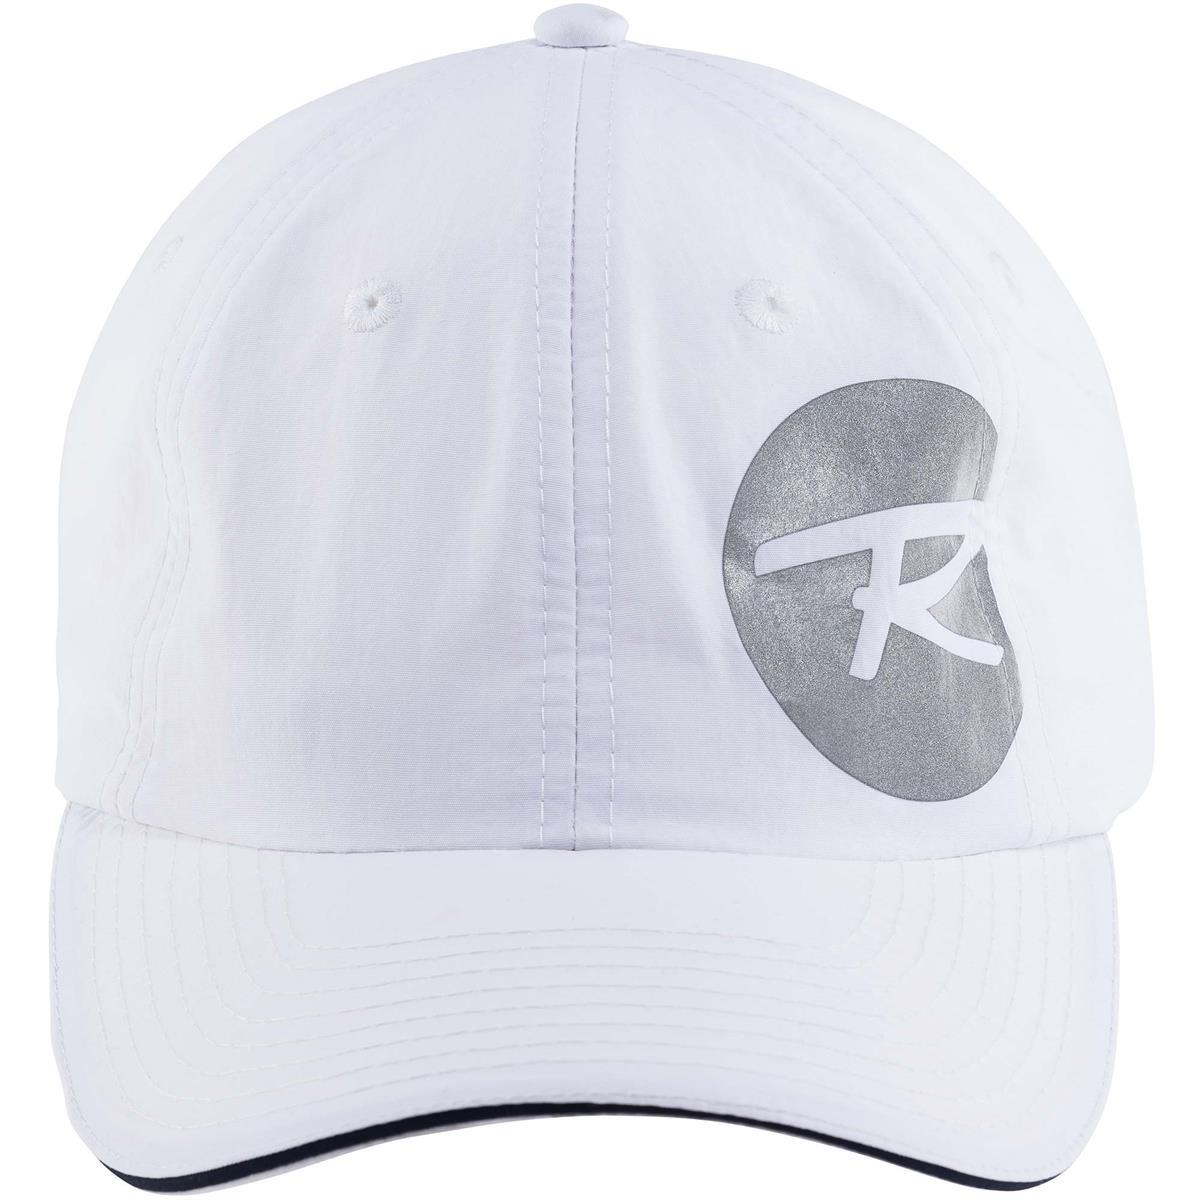 Rossignol Apparel Moon Cap